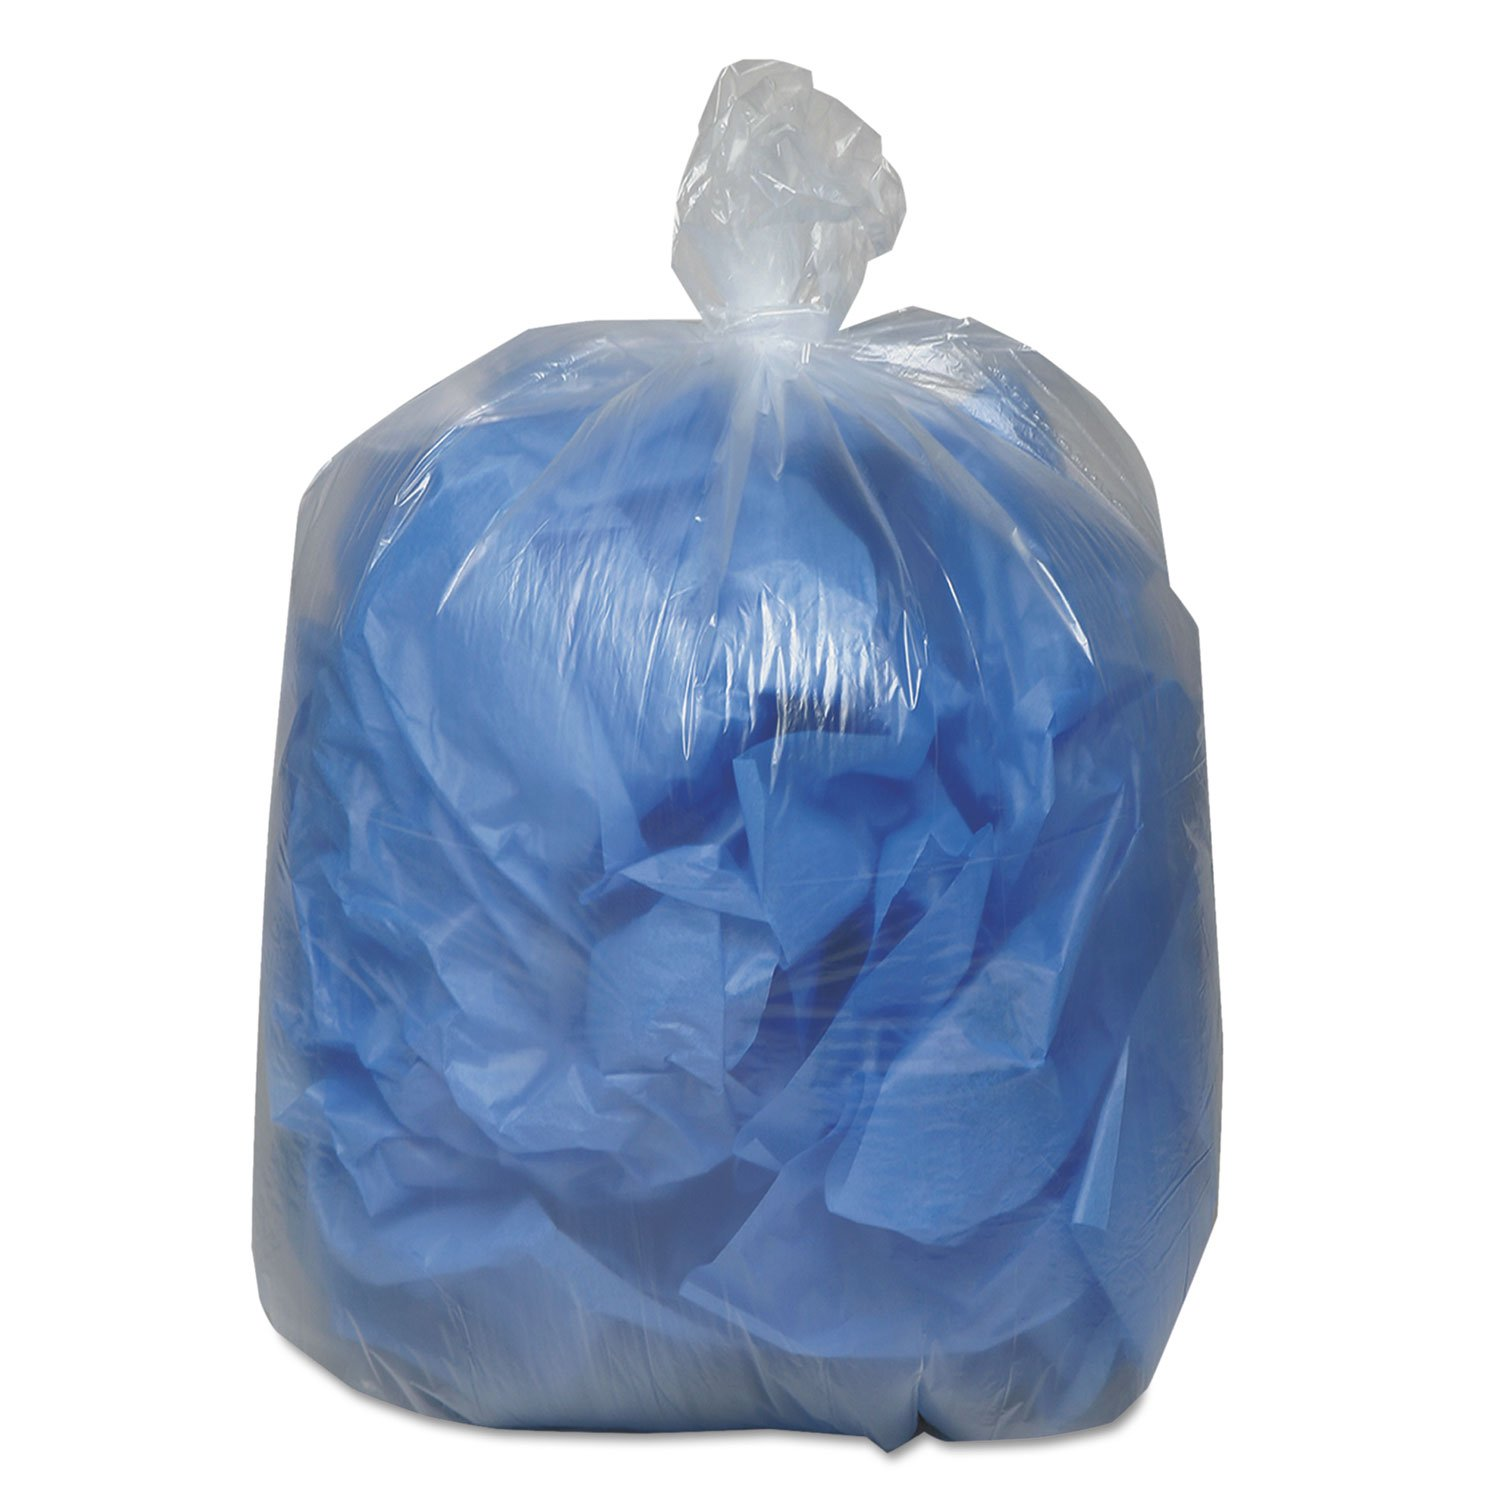 Earthsense Clear Recycled Can Liners, 55-60 gallons, 1.5mil, Clear  (Case of 100) by Webster (Image #1)